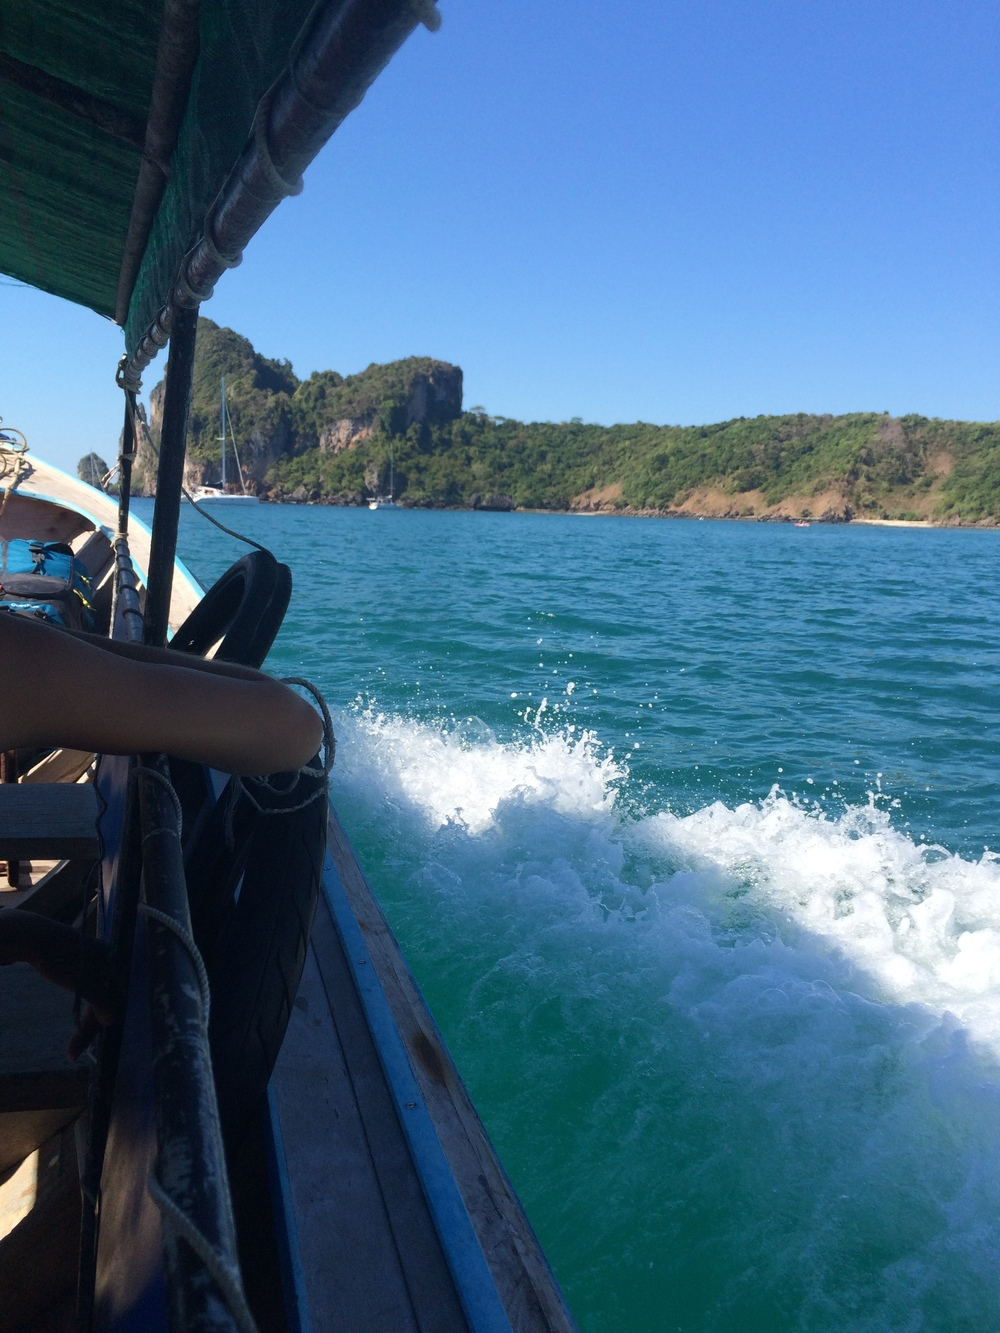 Taxi boat around the island to get to our hotel.